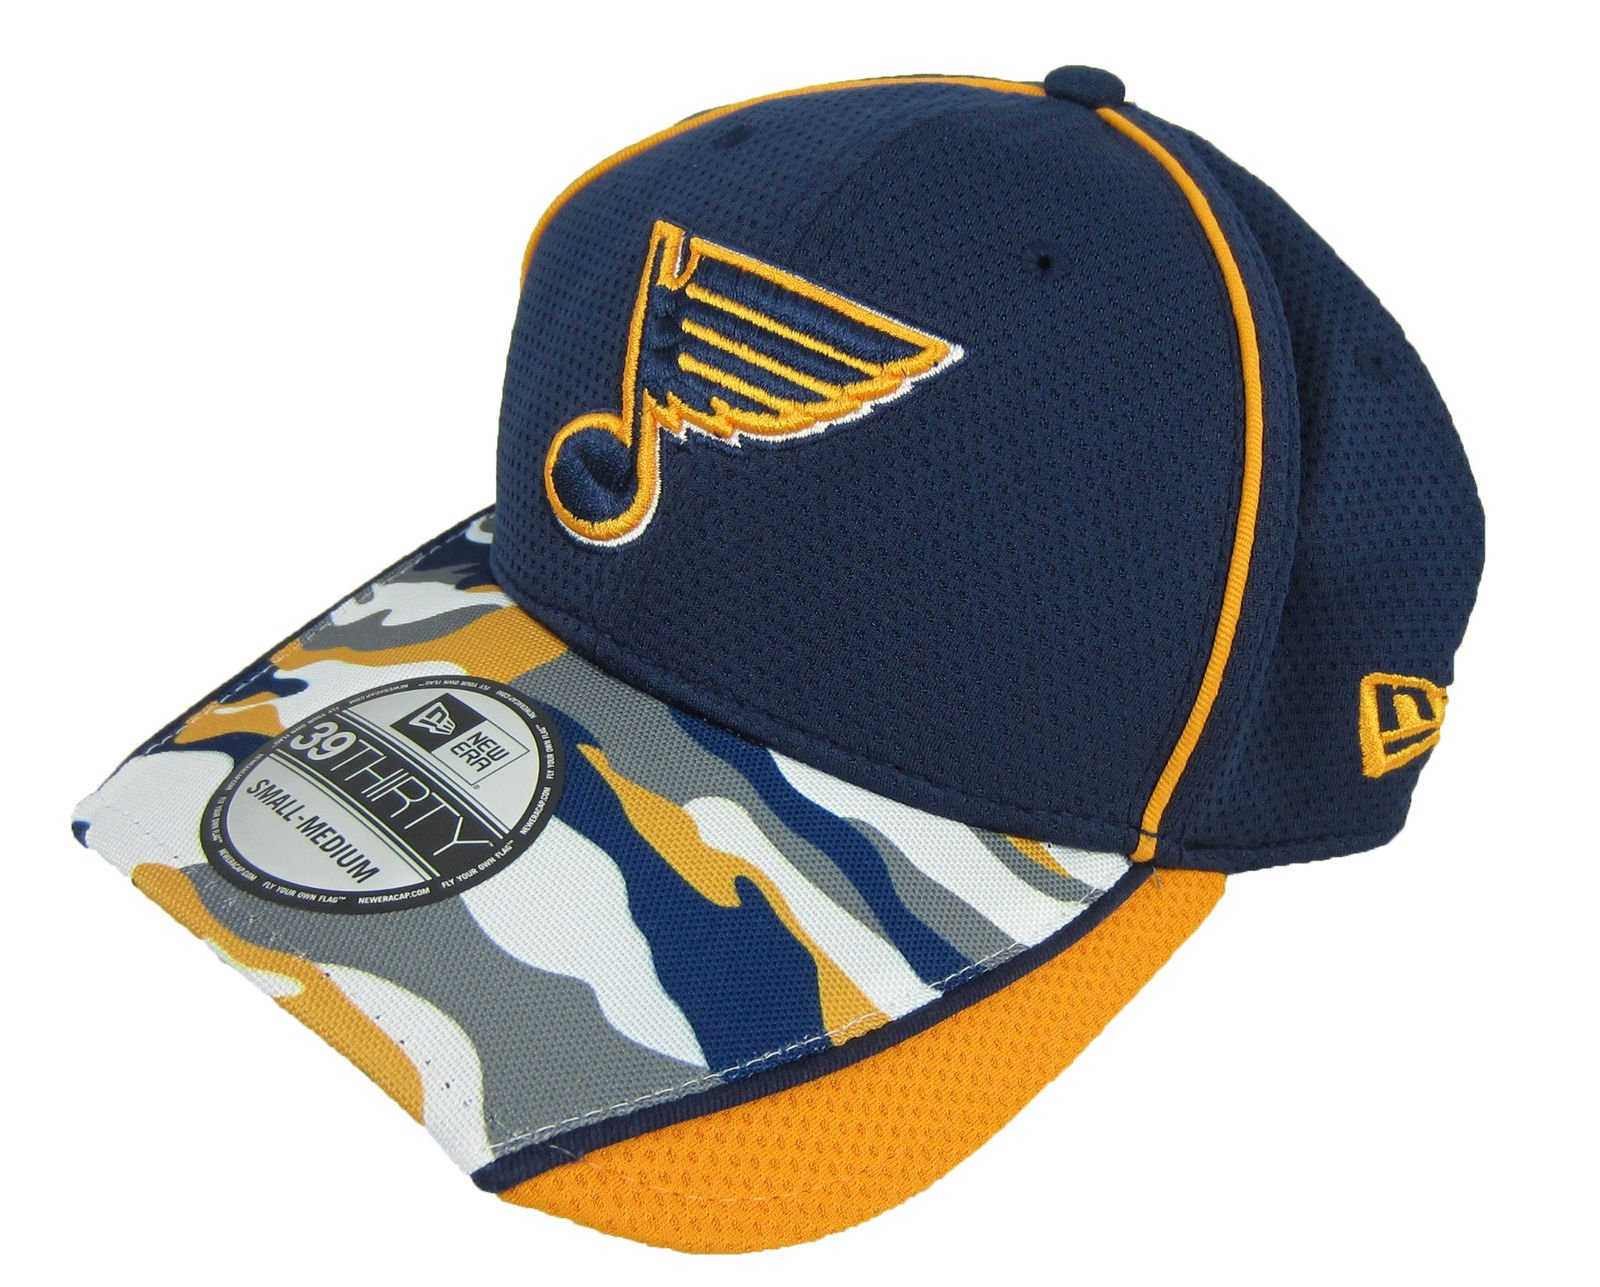 6d8505e6303 Details about New Era NHL Hockey 39Thirty St. Louis Blues Hat Fitted NWT